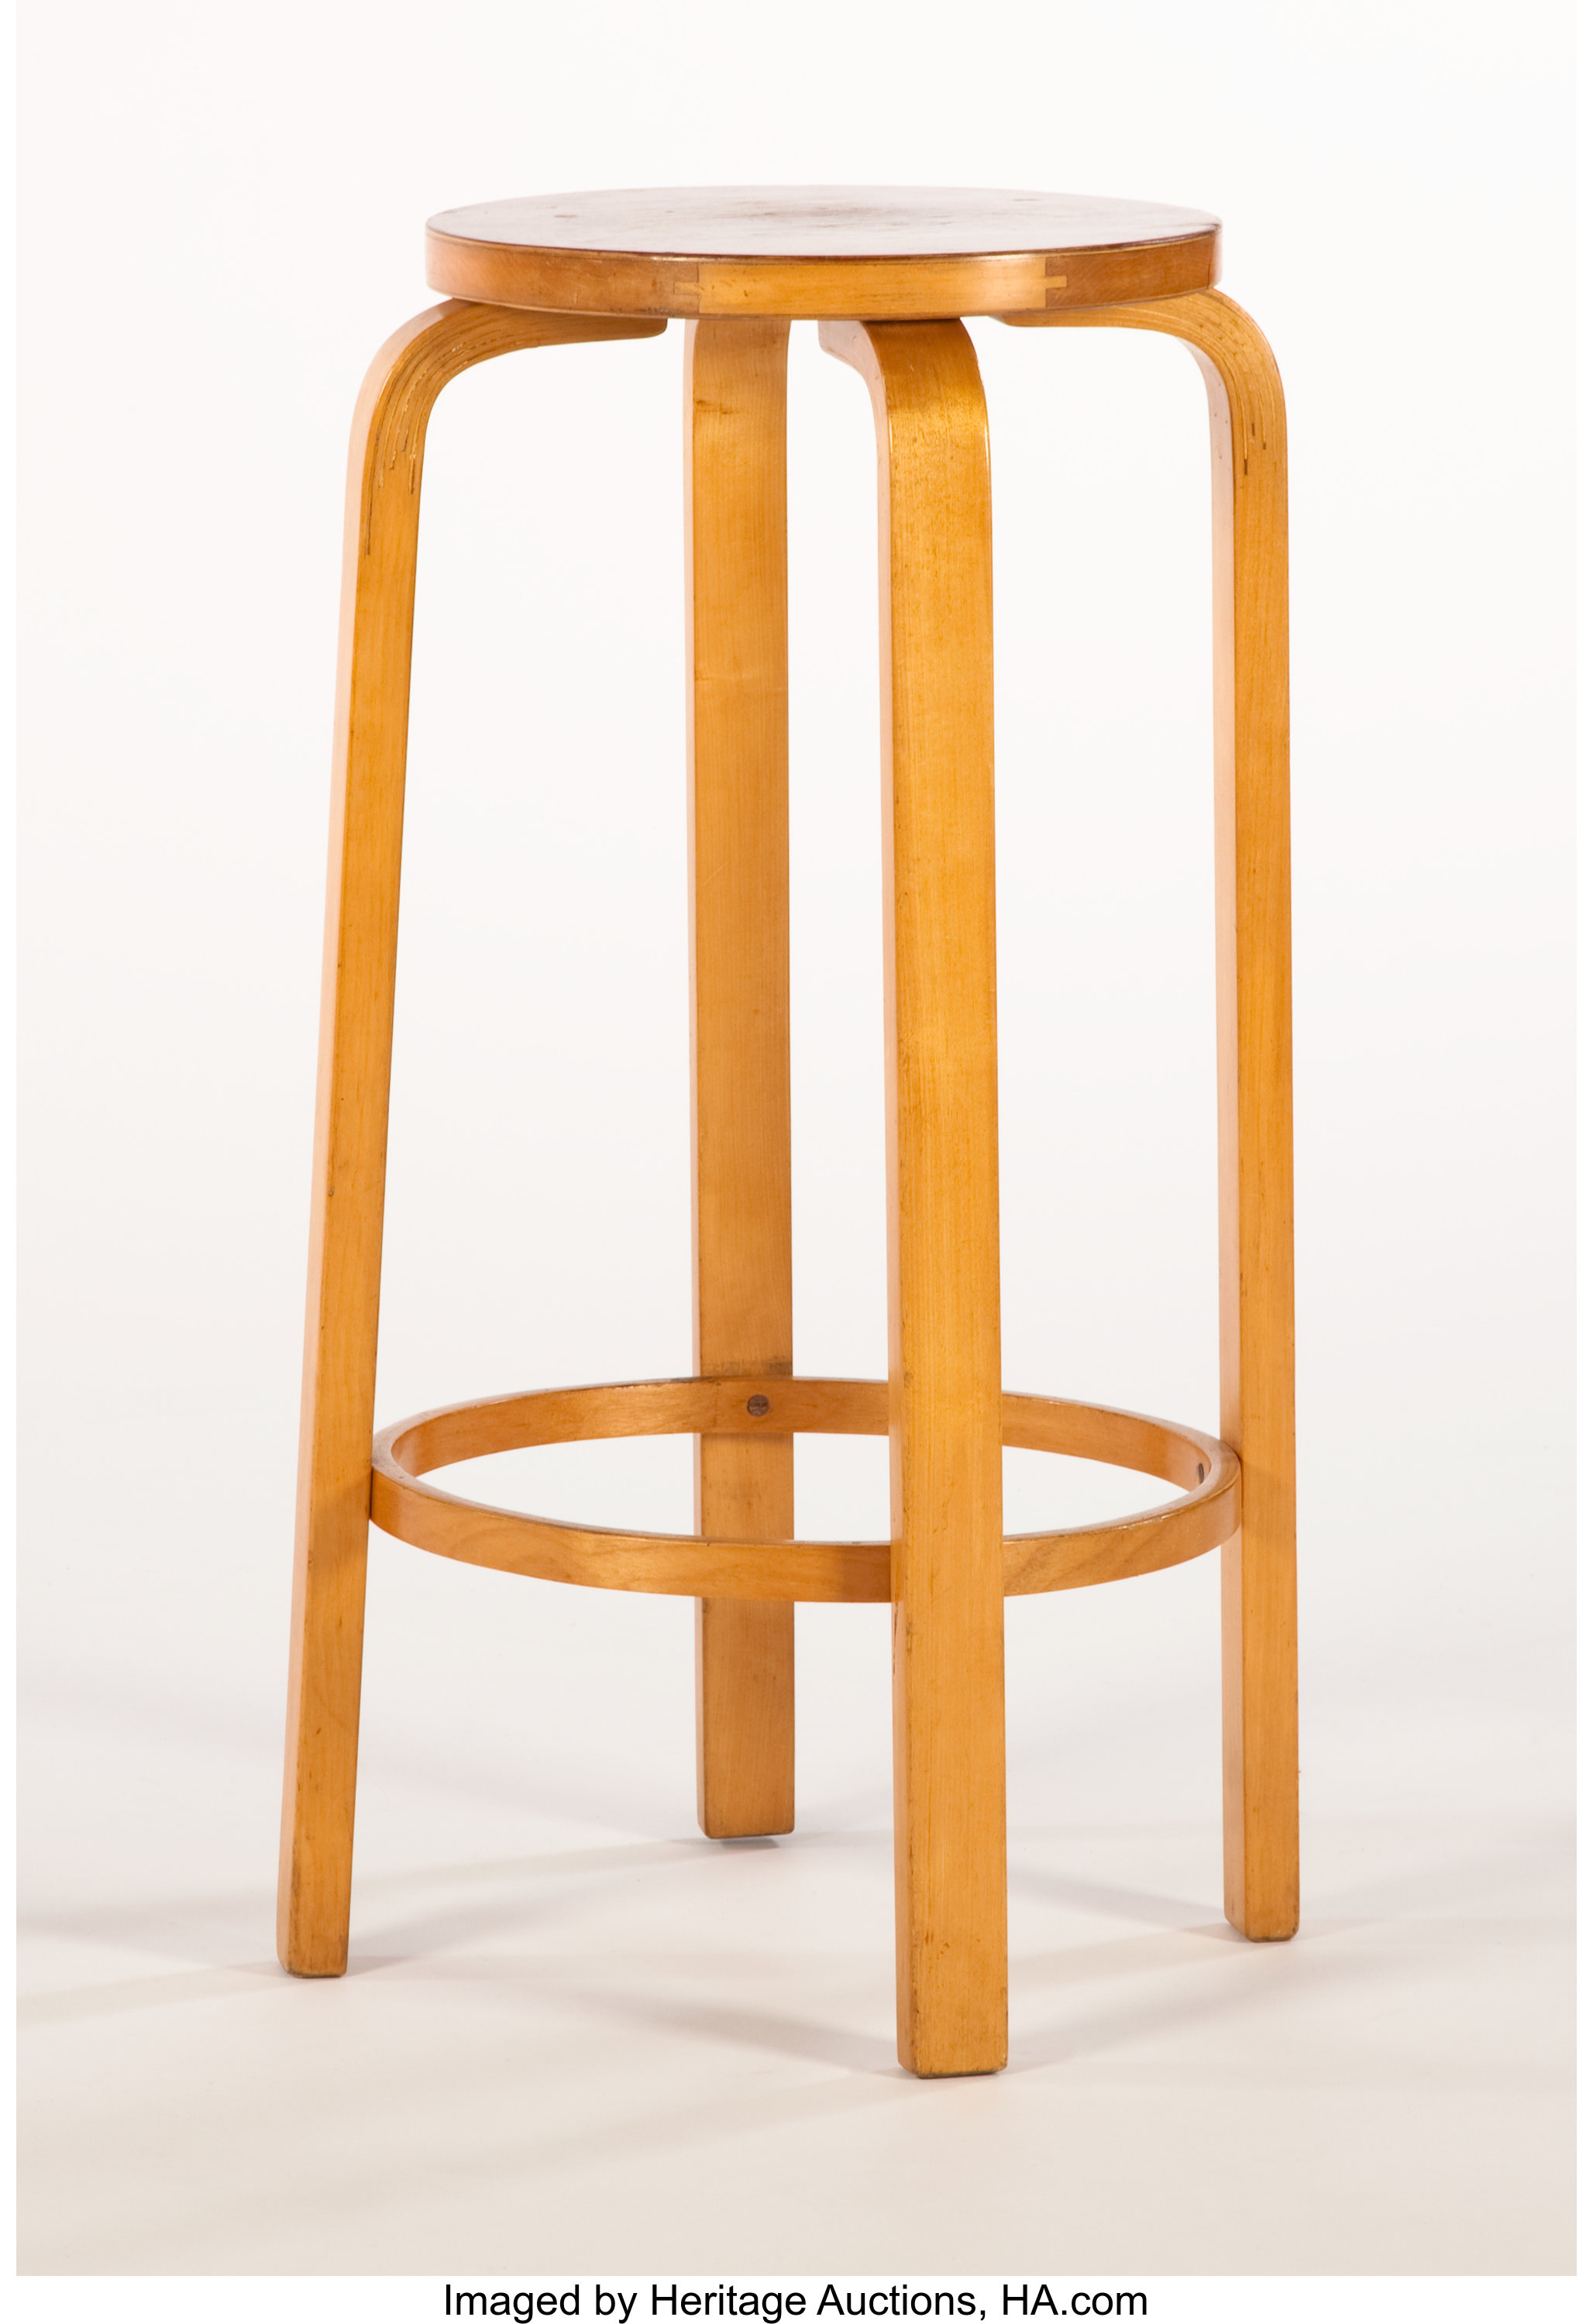 Terrific Alvar Aalto A Laminated Birch High Stool With Foot Rest Ocoug Best Dining Table And Chair Ideas Images Ocougorg